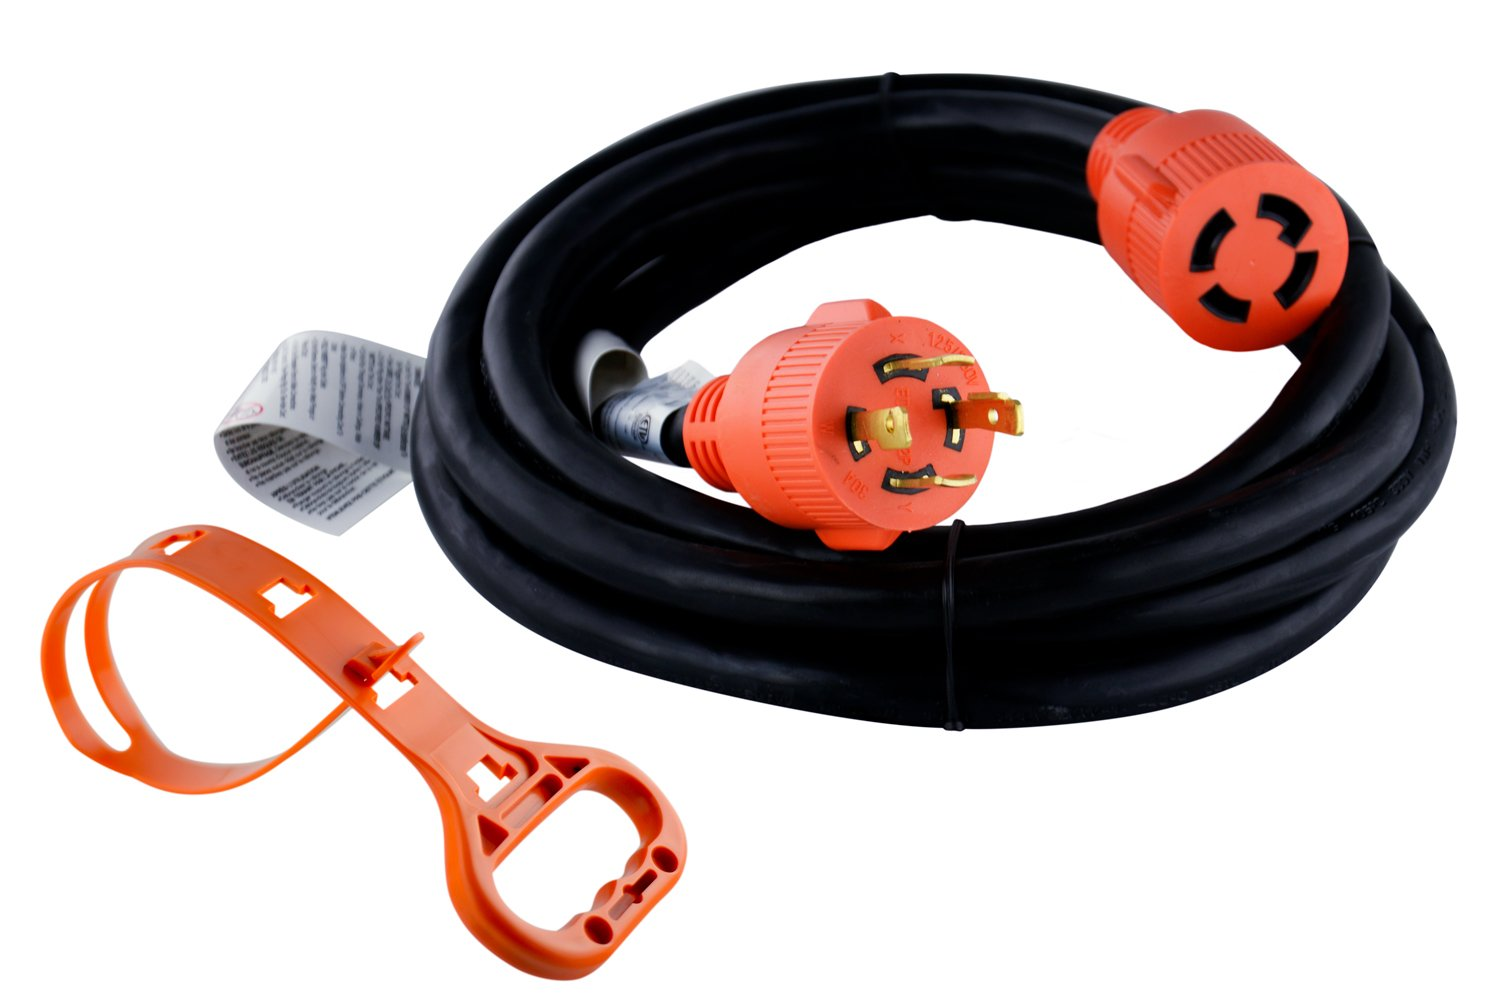 GoWISE Power Generator Extension Cord w/ Cord Organizer (L14 30AMP/4 PRONGS - 10 FEET) by GoWISE Power